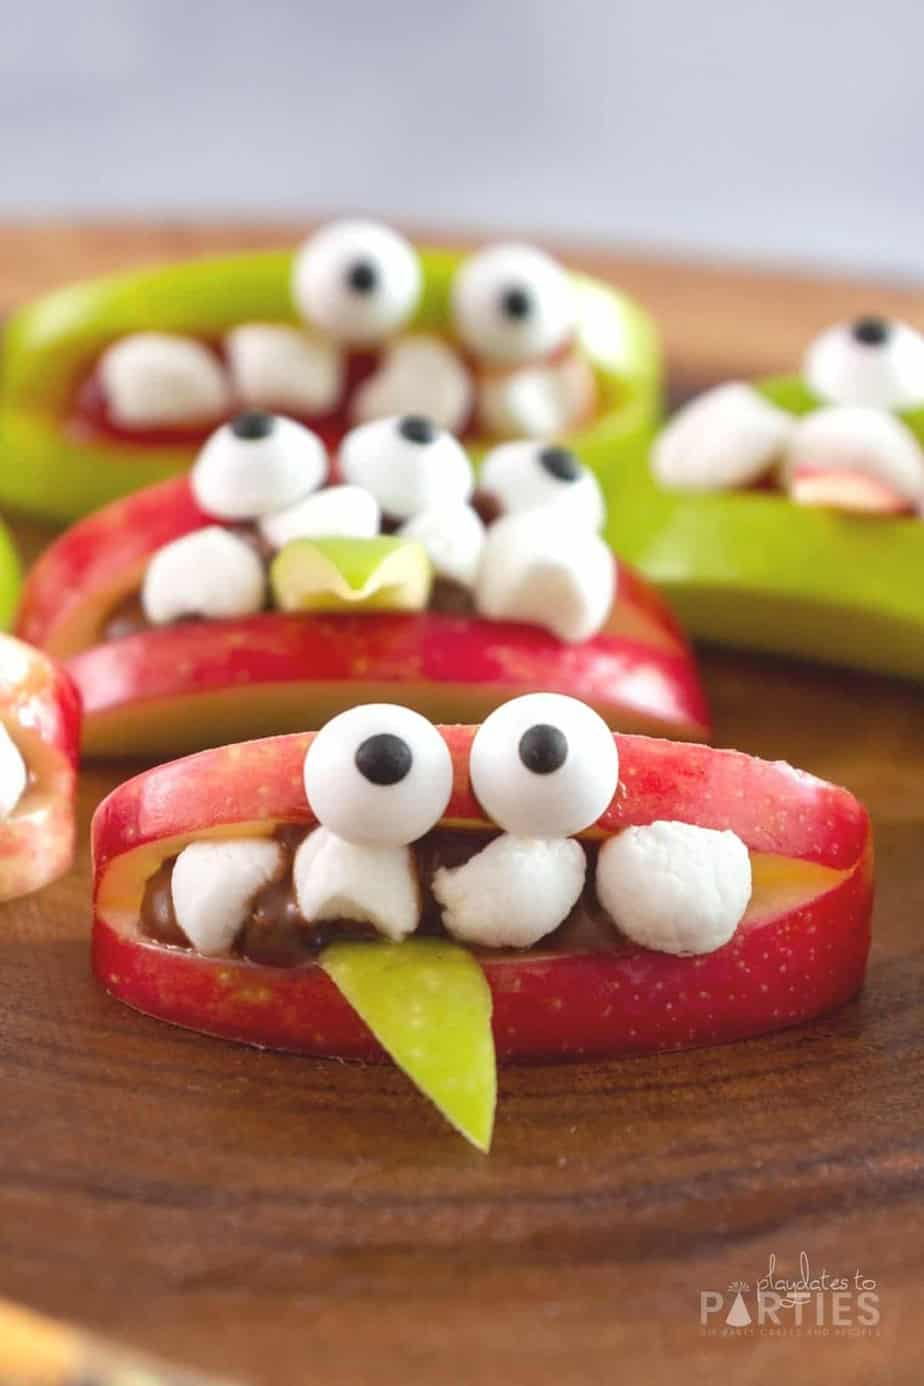 Apple slices decorated with marshmallows and candy eyes to make a monster face